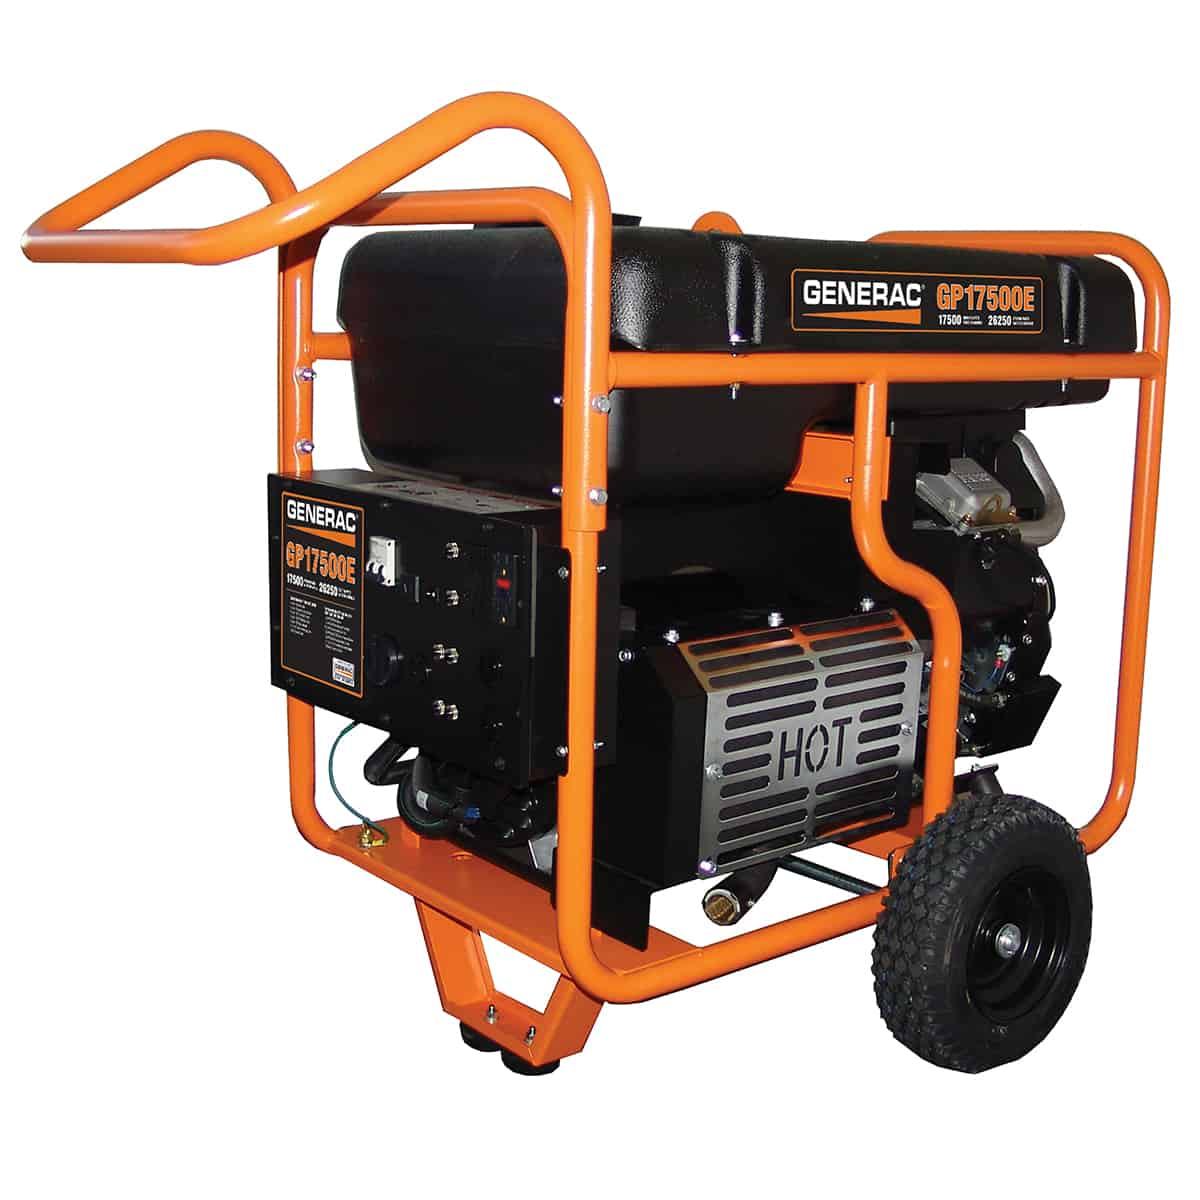 Generac Portable GP Series GP17500E Electric Start